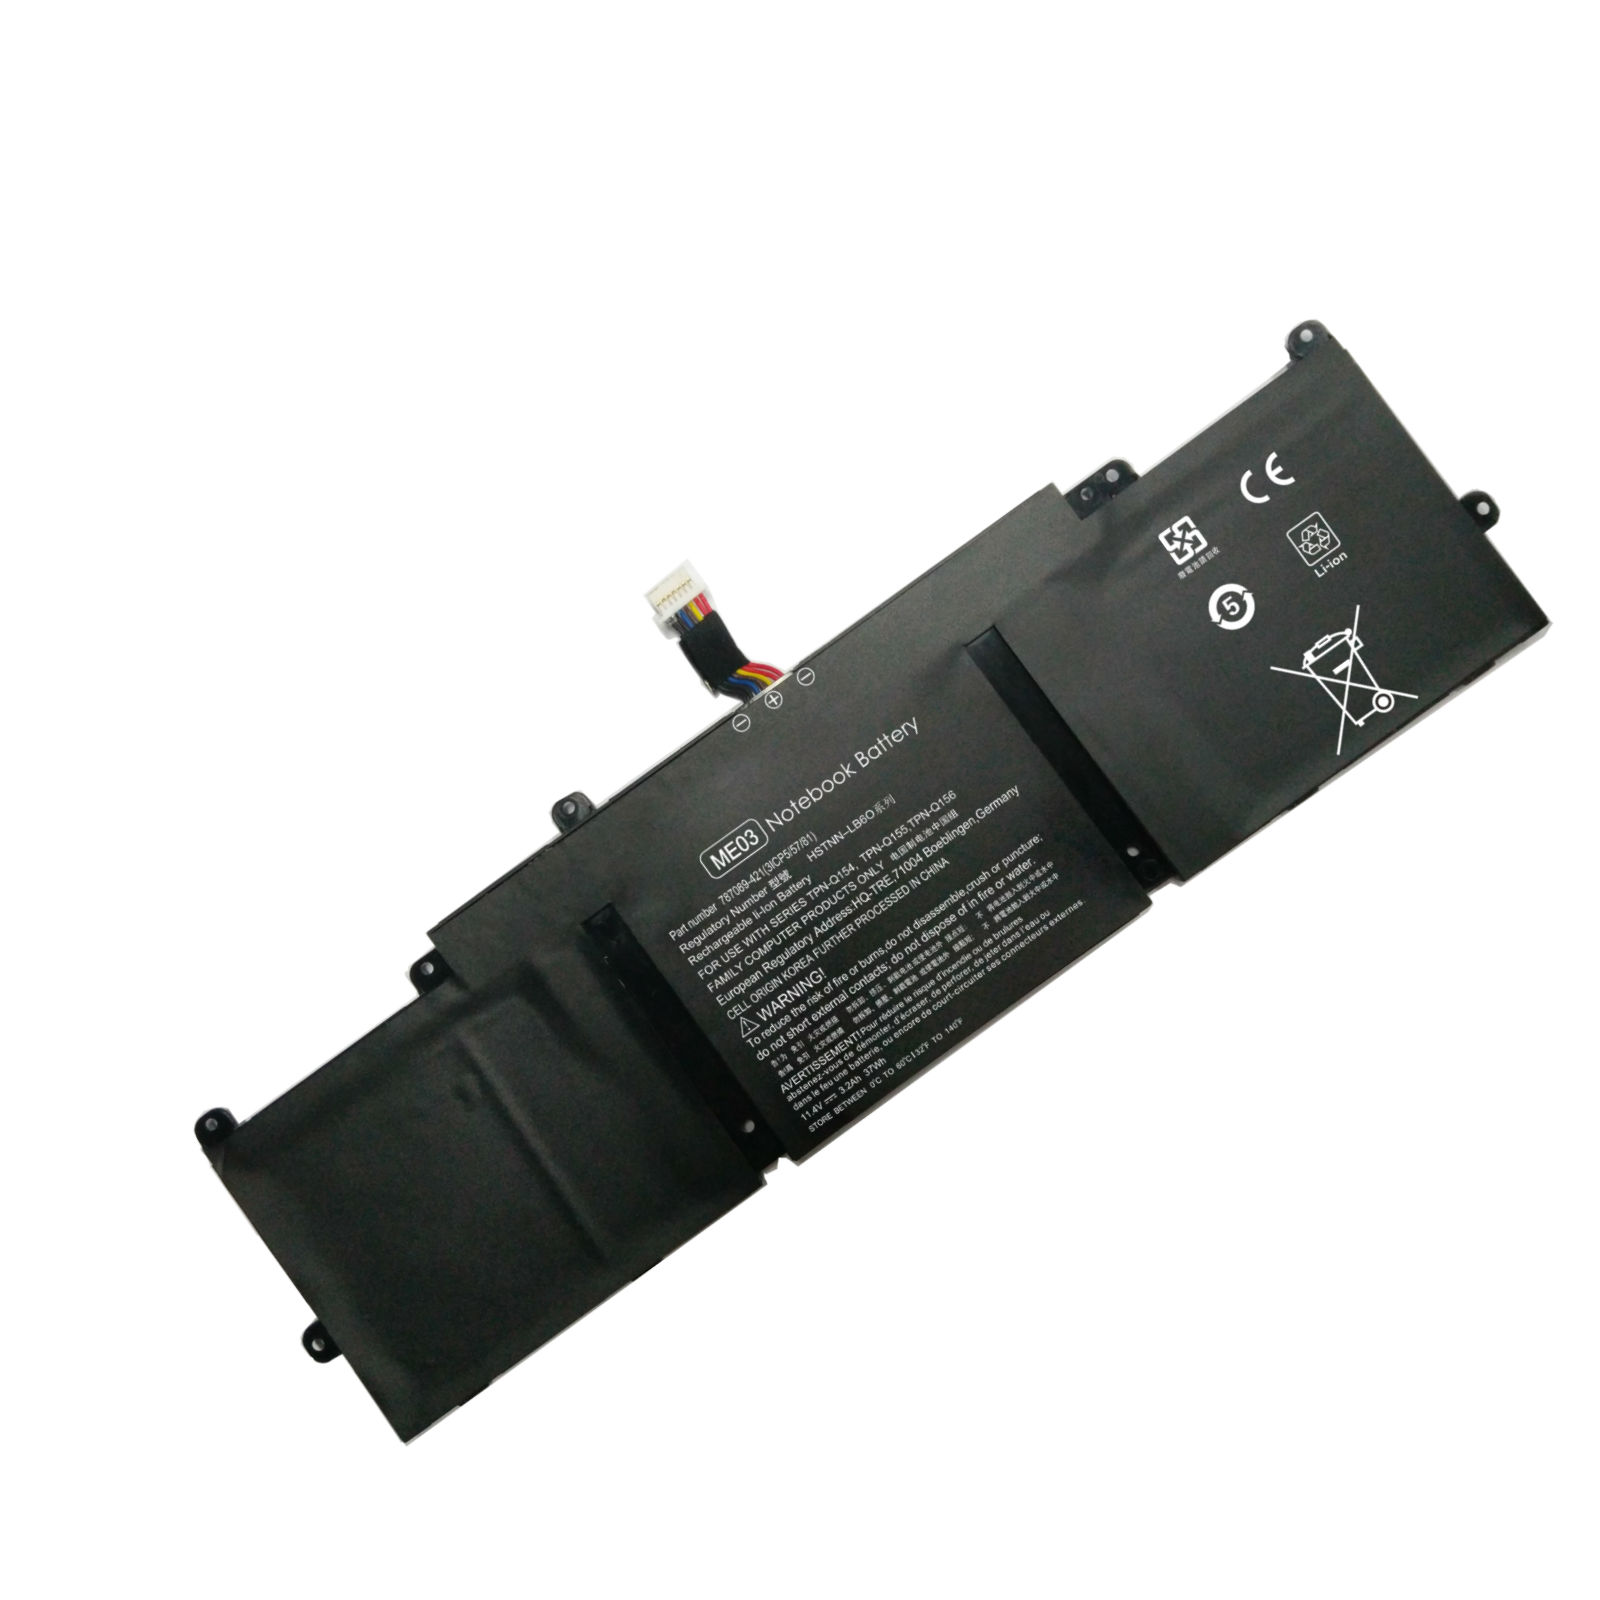 Superb Choice - Batterie pour HP Stream Notebook PC 13-c021TU - image 1 de 1